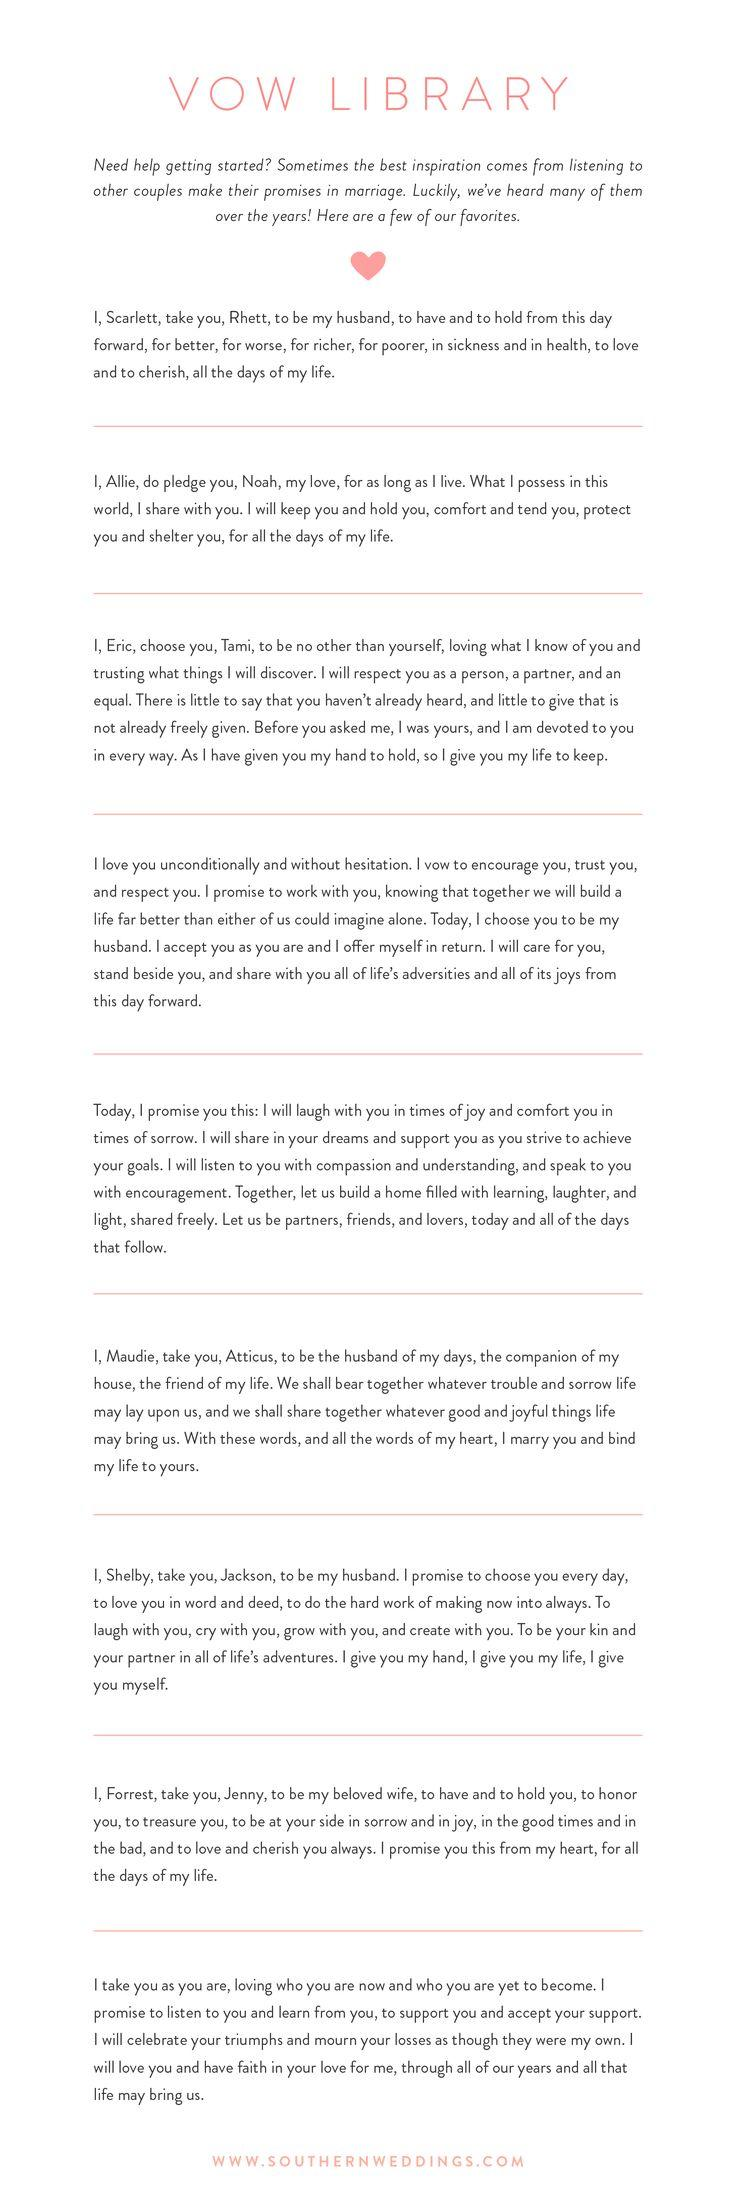 Wedding - 9 Romantic Wedding Vows